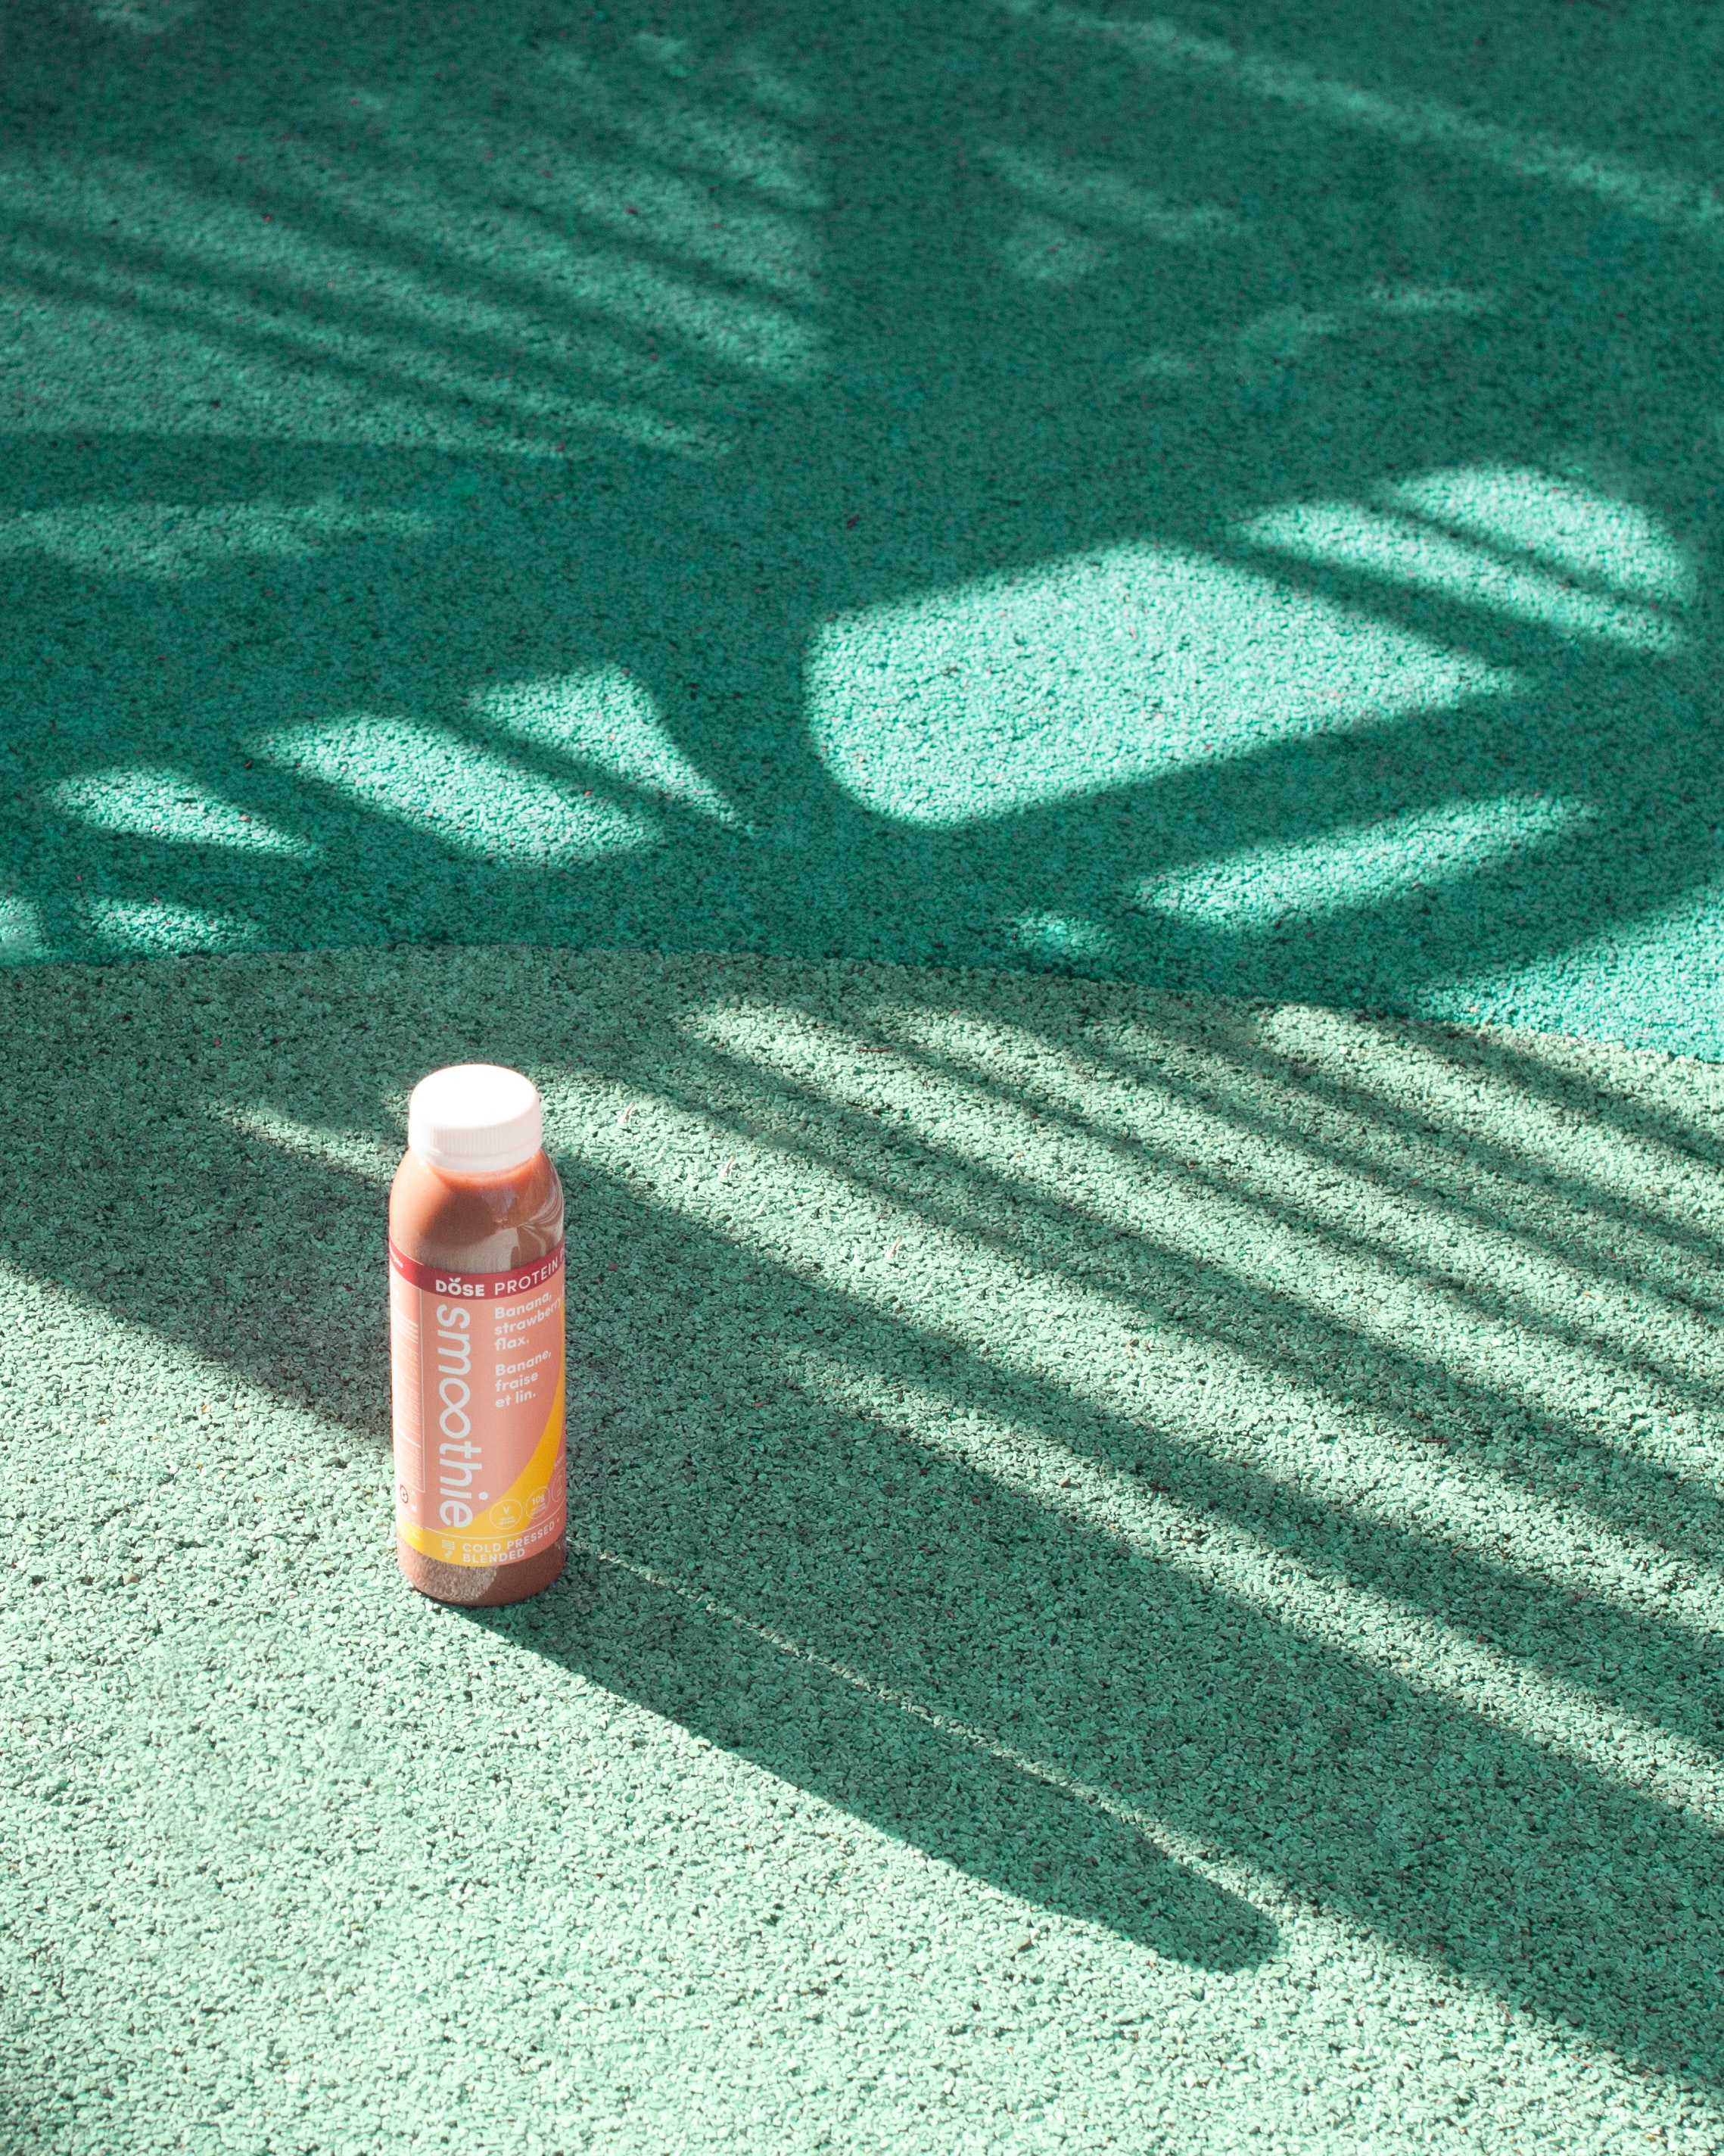 Smoothie product bottle on teal surface